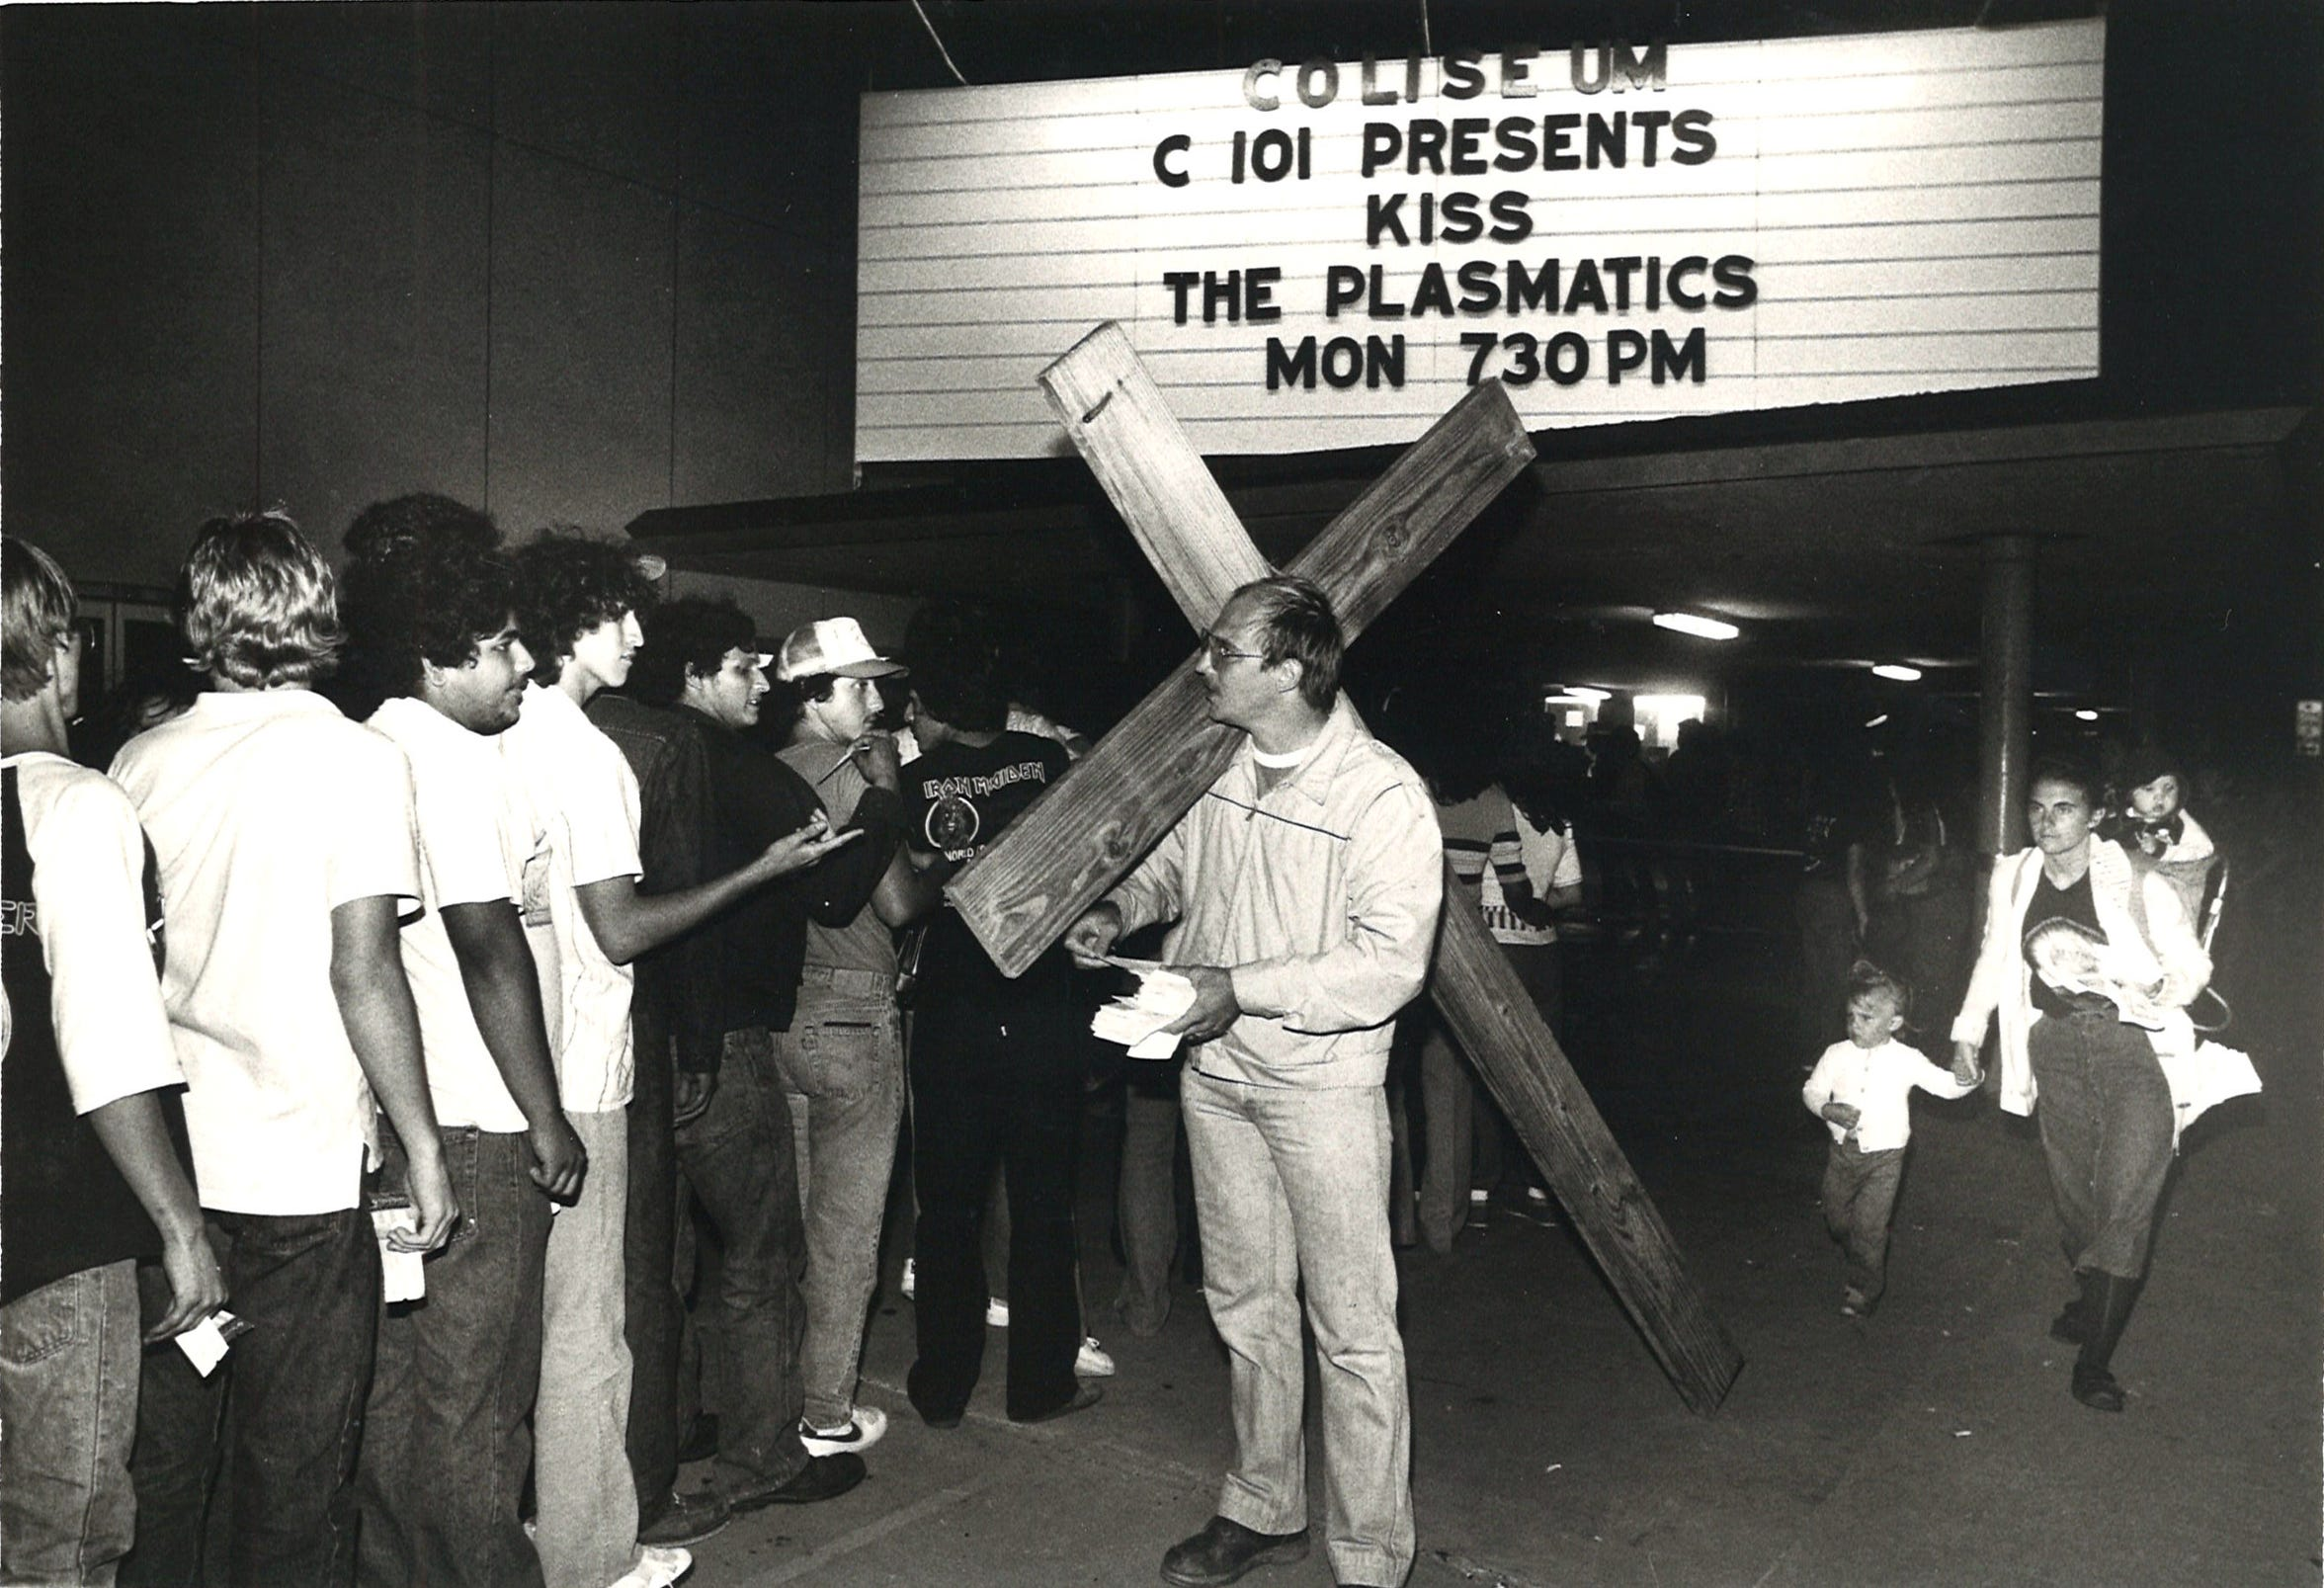 Michael Woroniecki (with cross) attempts to persuade concergoers to not see Kiss and The Plasmatics at Corpus Christi's Memorial Coliseum on March 14, 1983.